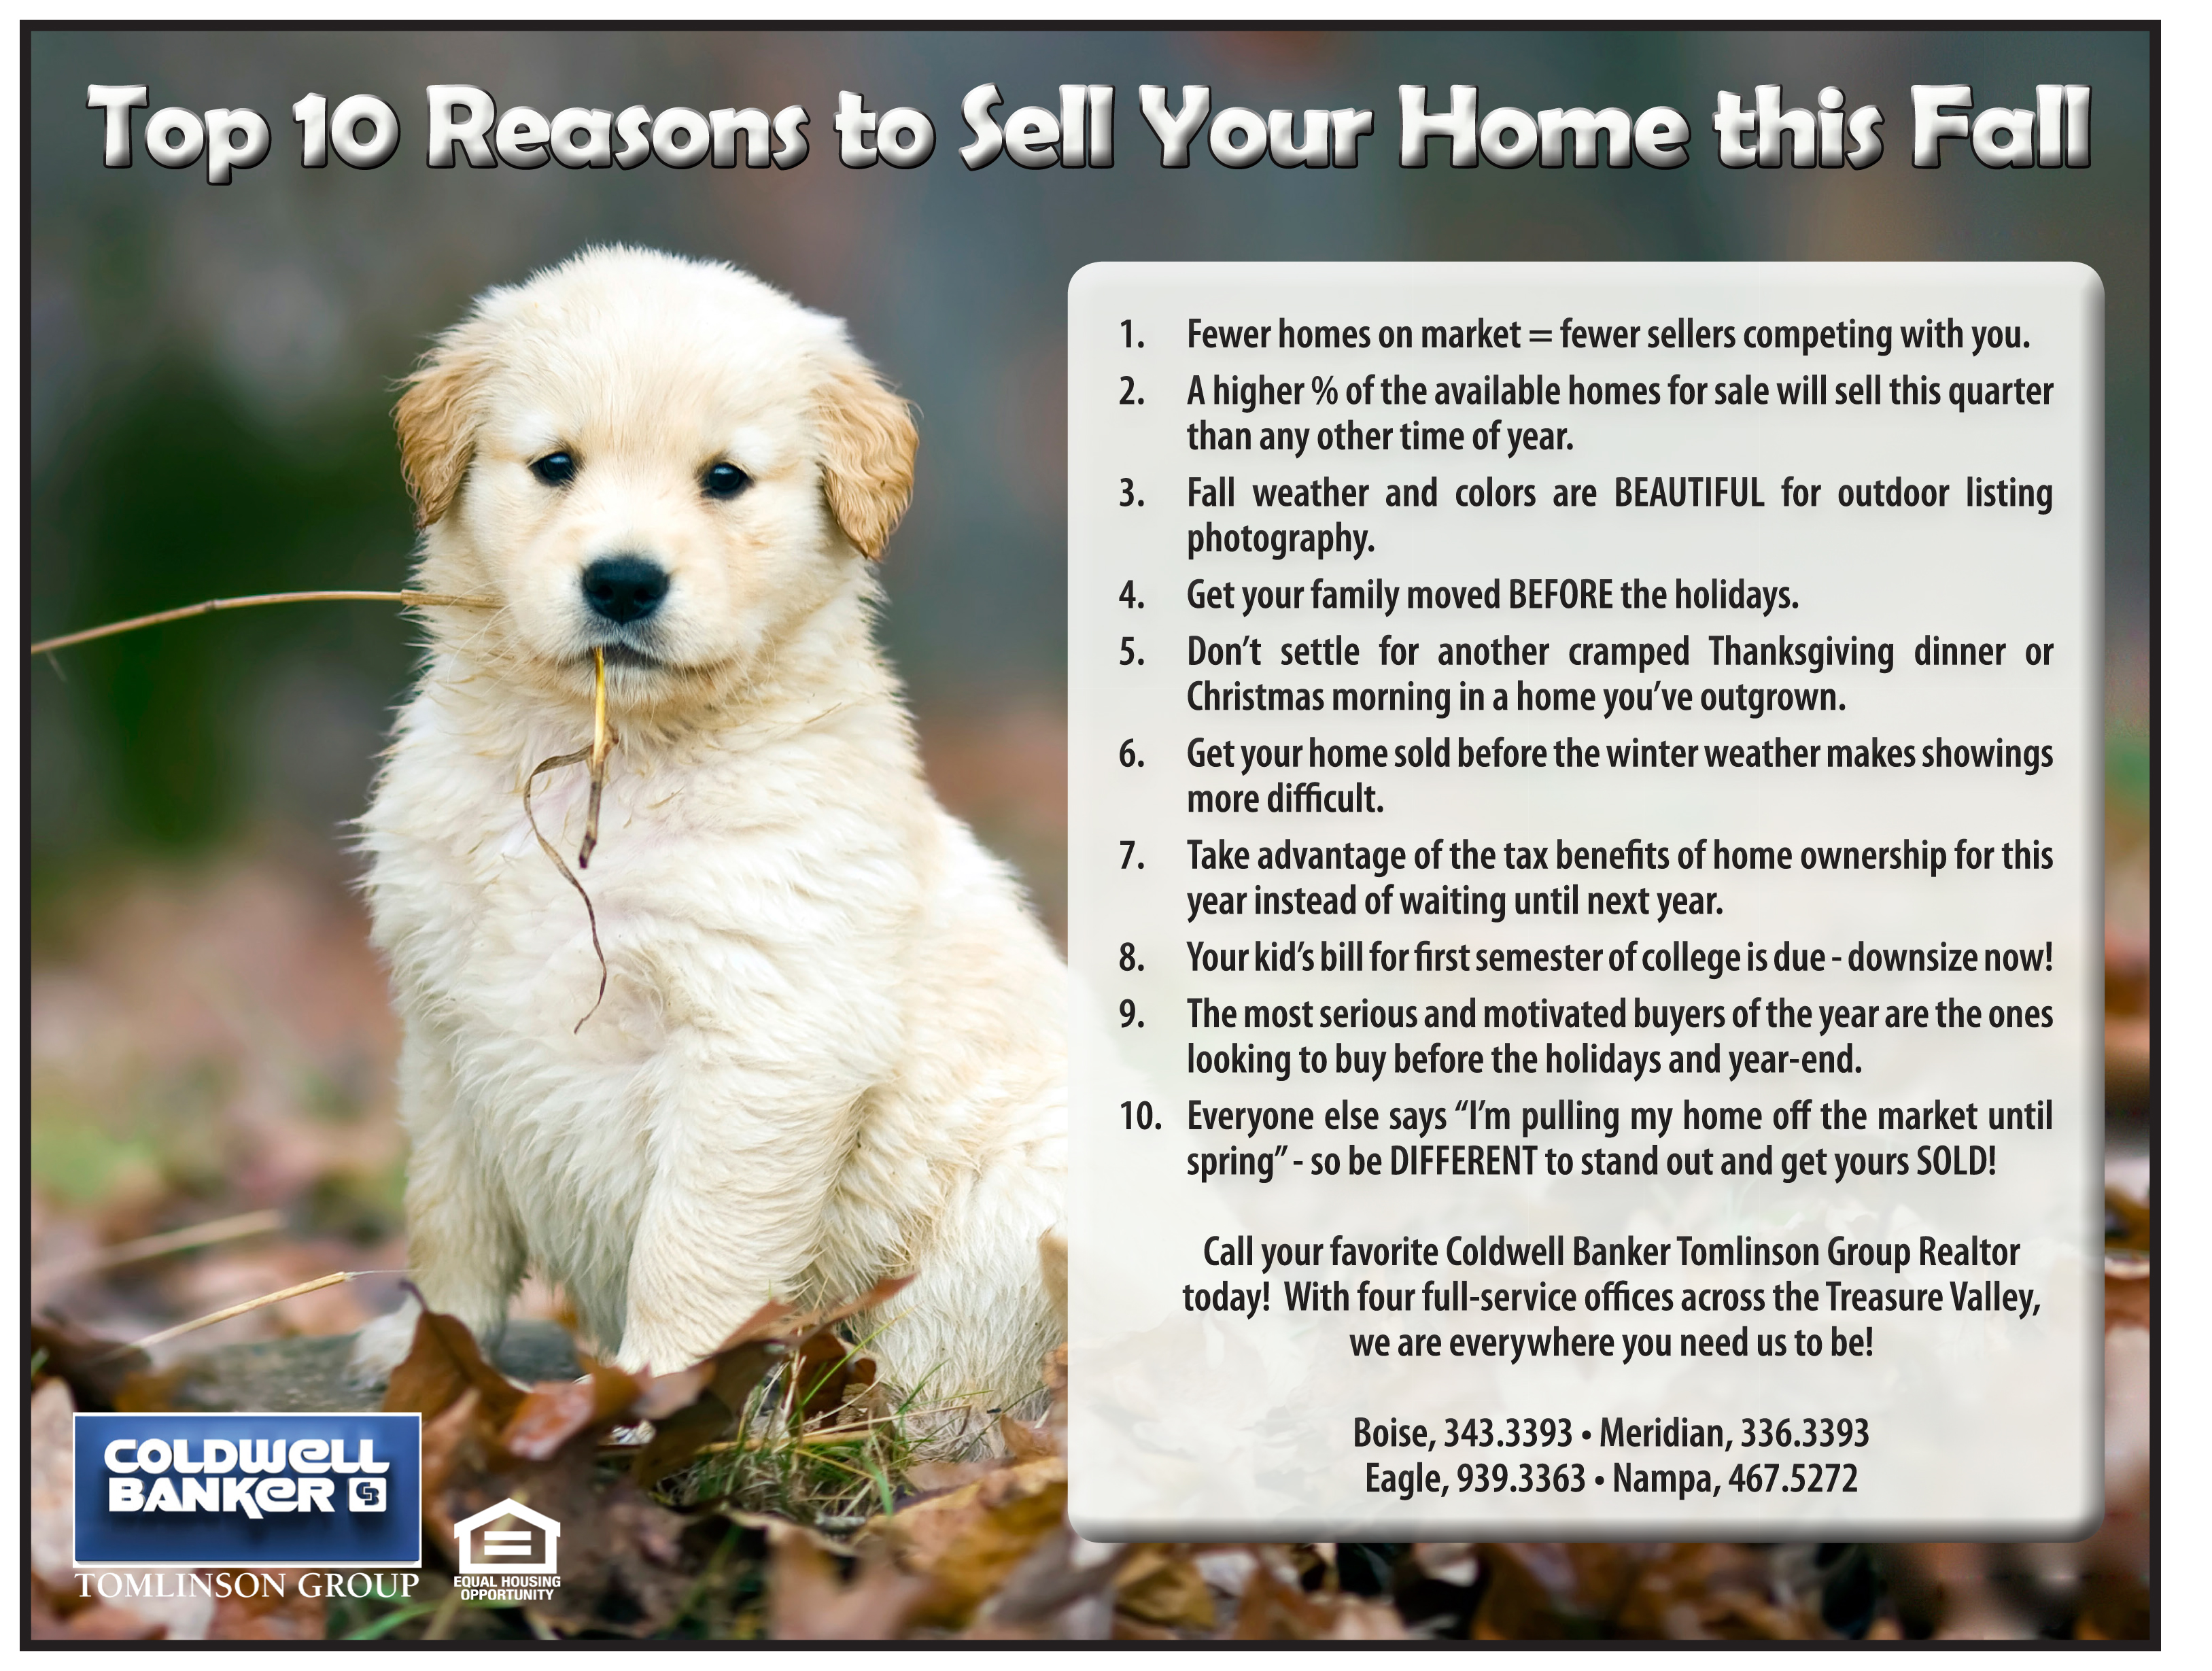 Top 10 Reasons to Sell in Fall - letter size